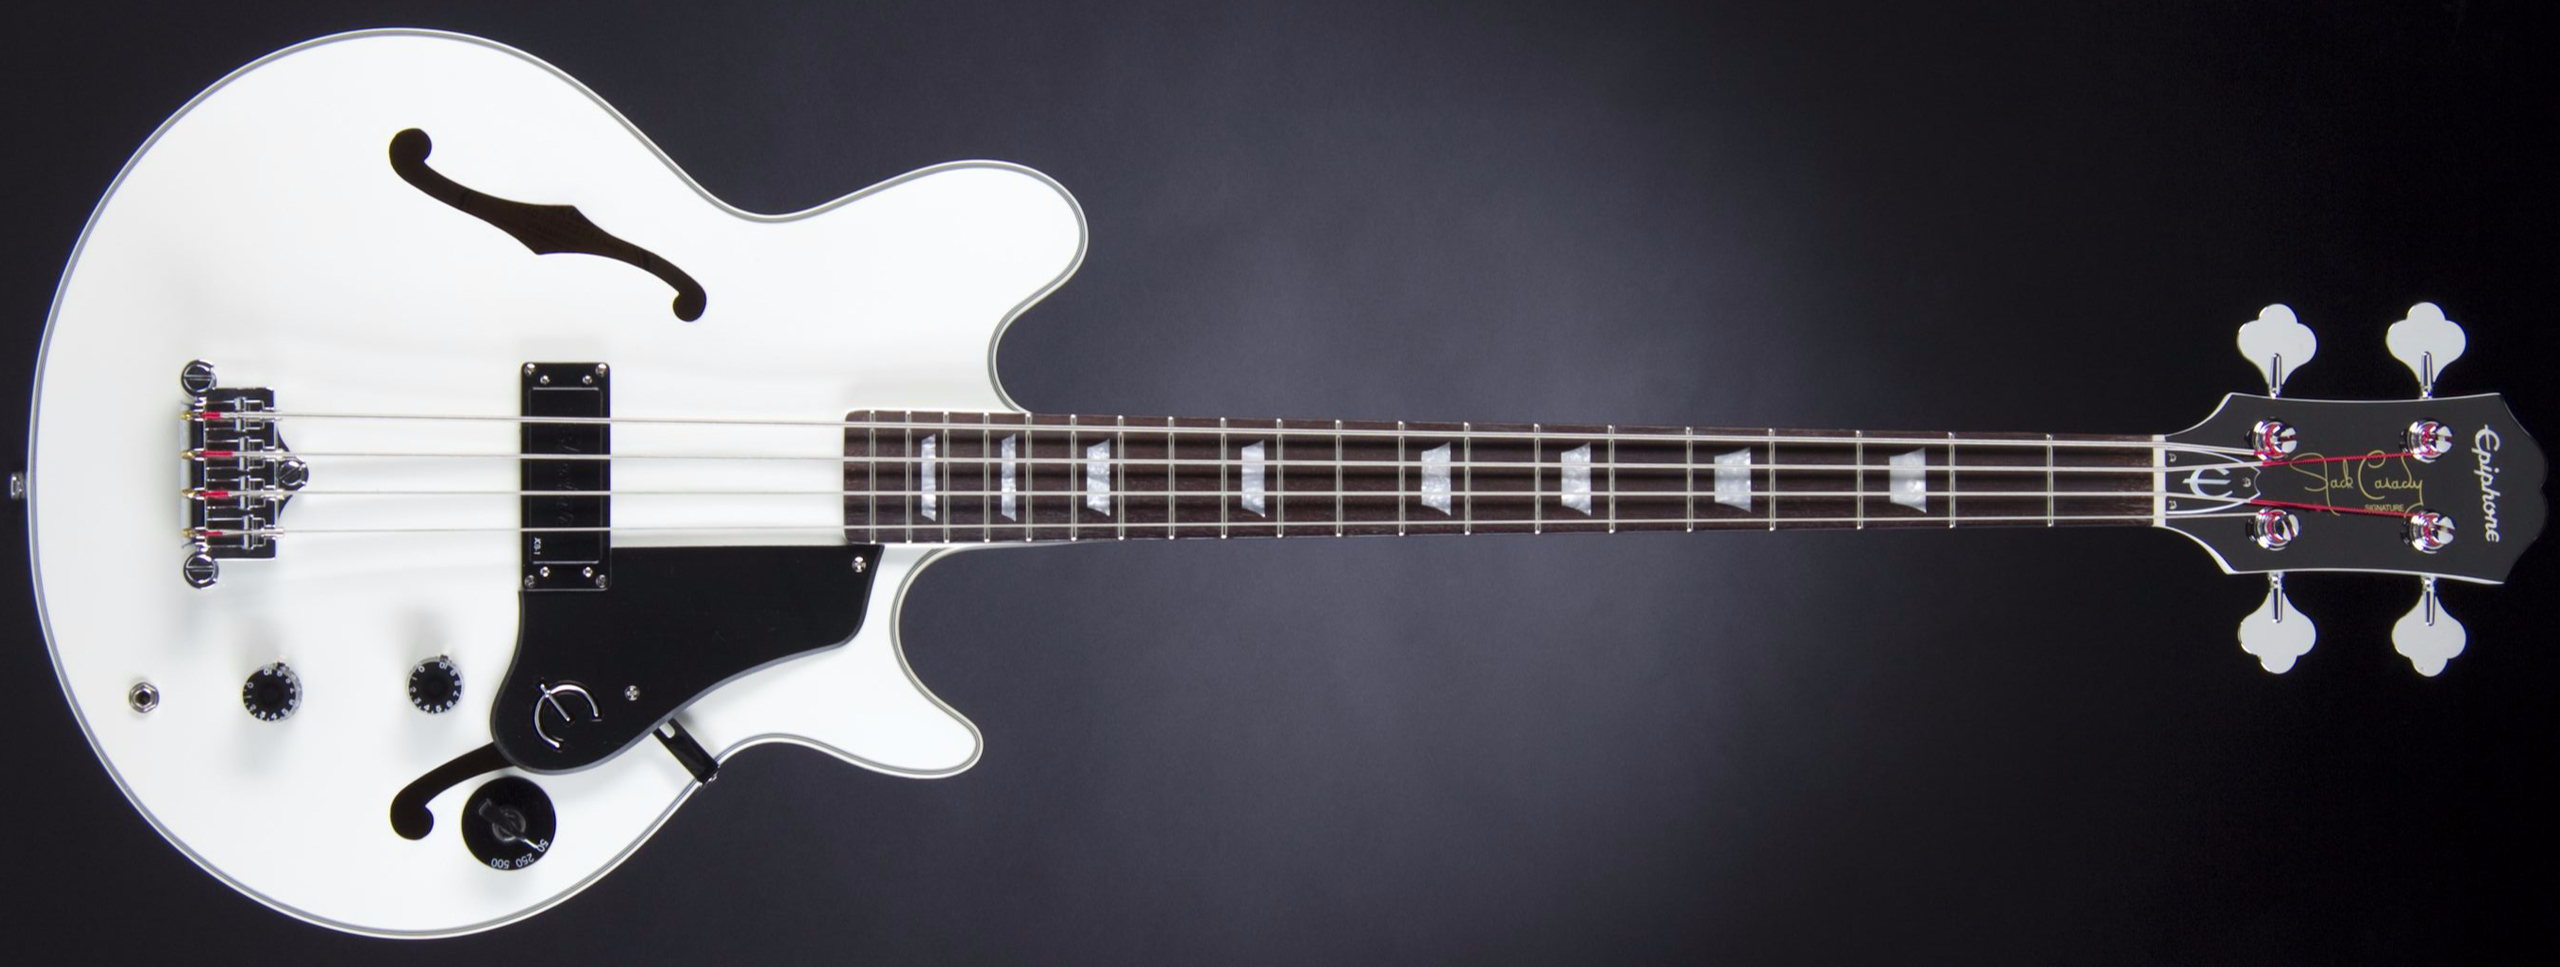 EPIPHONE Limited Edition Jack Casady Signature Bass Alpine White